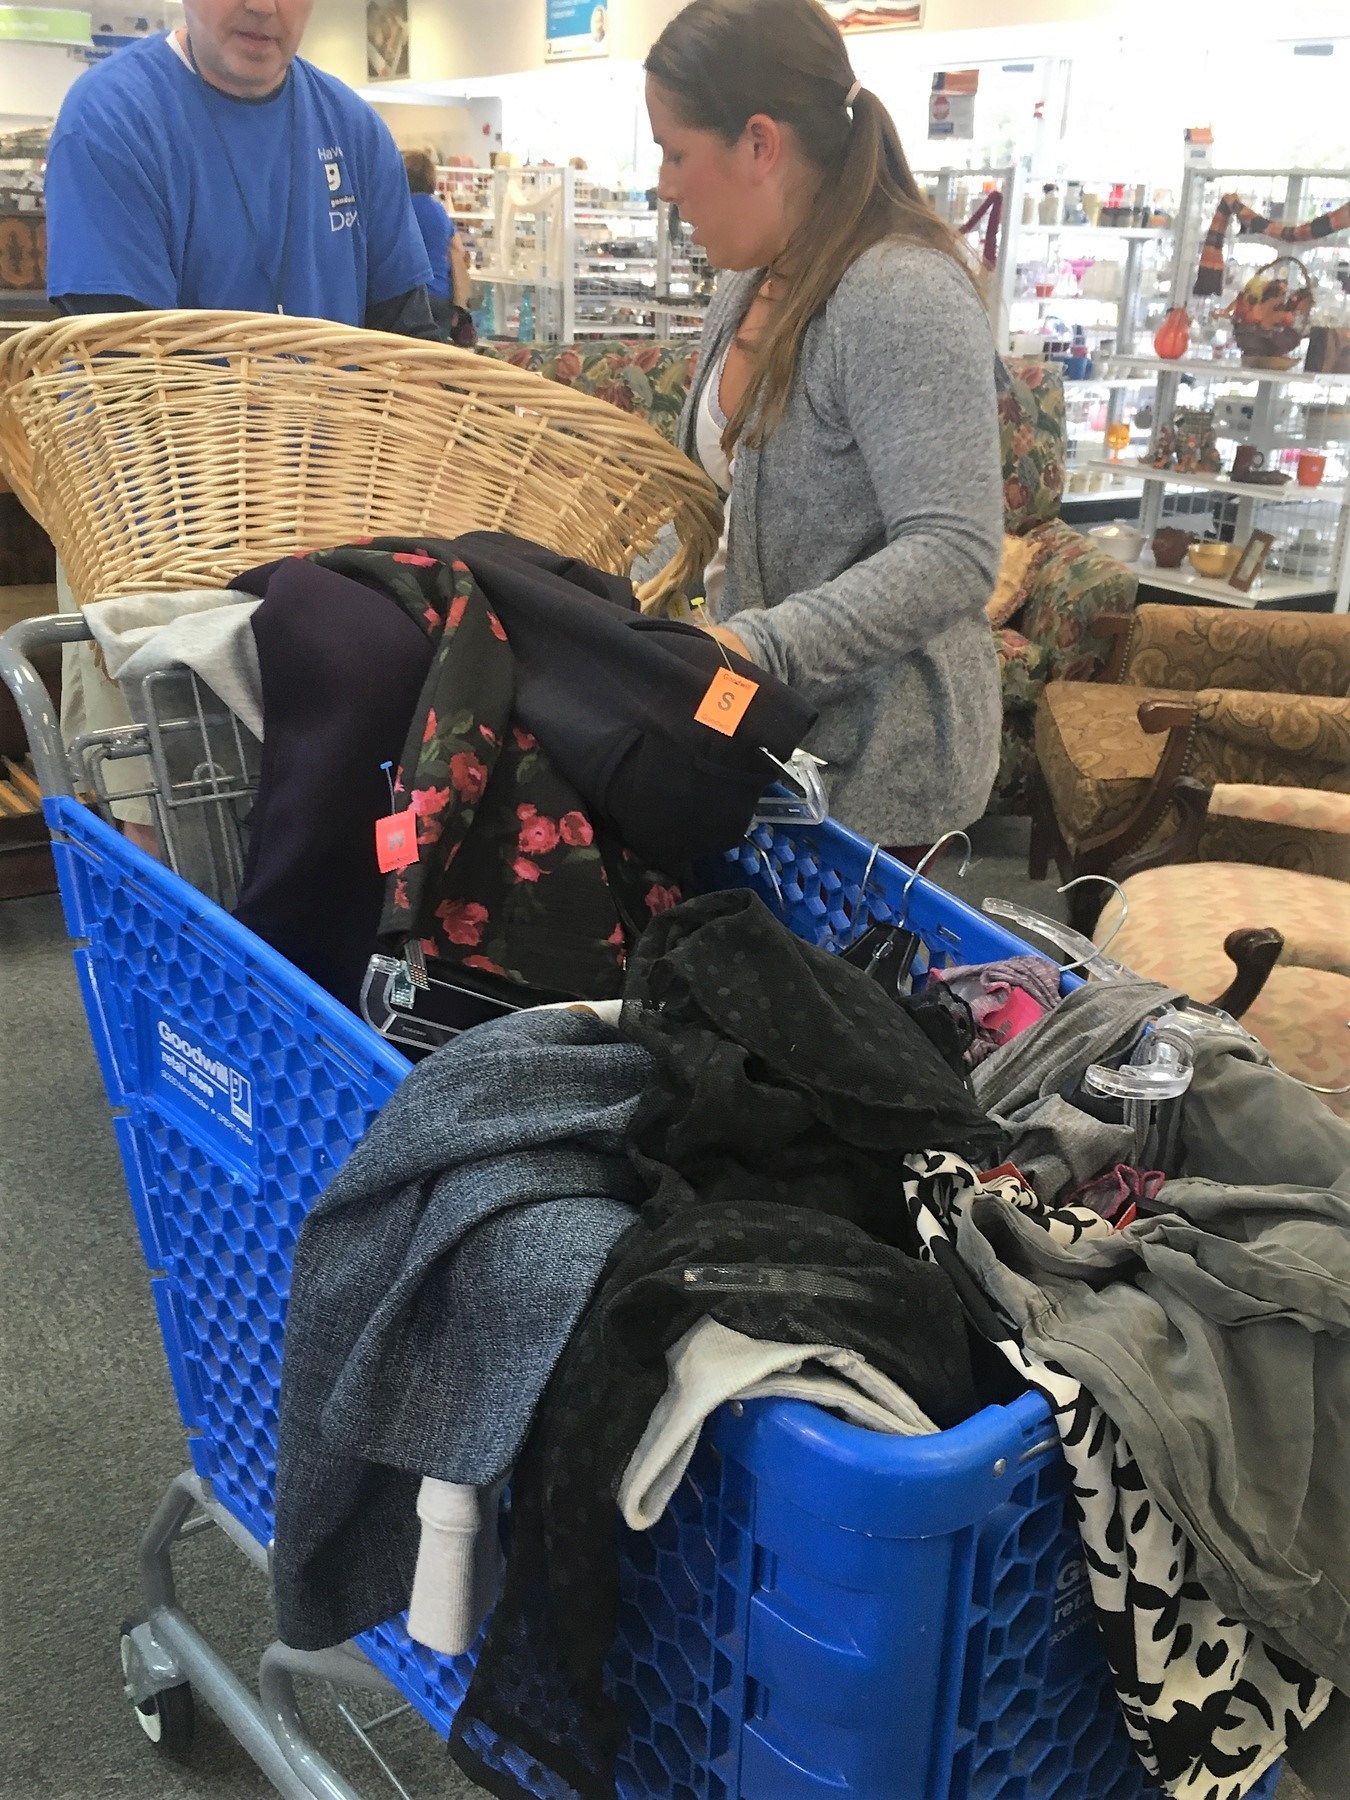 Meetup shopper's full cart at Richmond Highway Goodwill